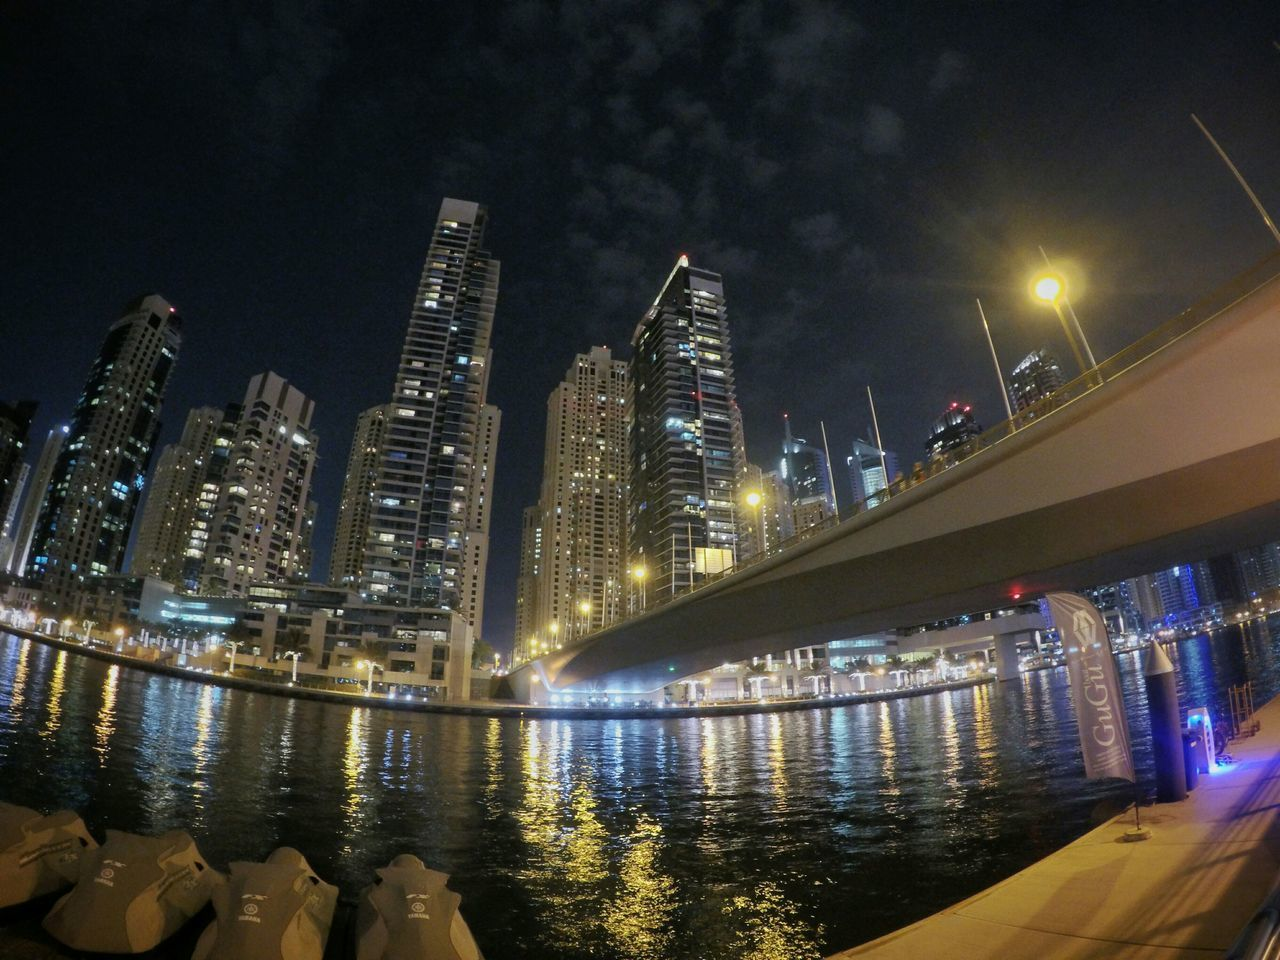 Dubai Marinayachtclub Dubaimarina Yacht UAE Bridge Night Lights